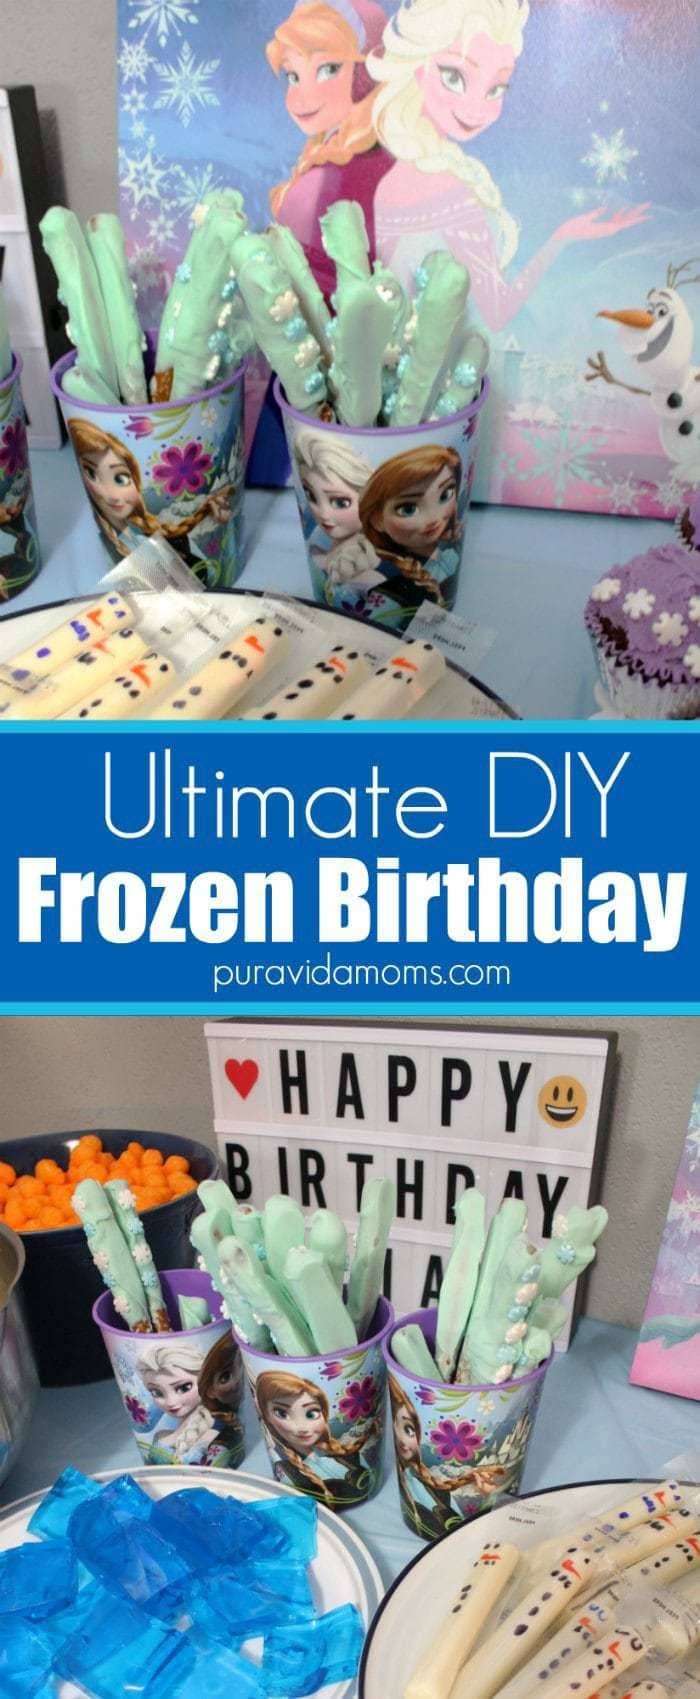 Ultimate DIY Frozen Birthday Party